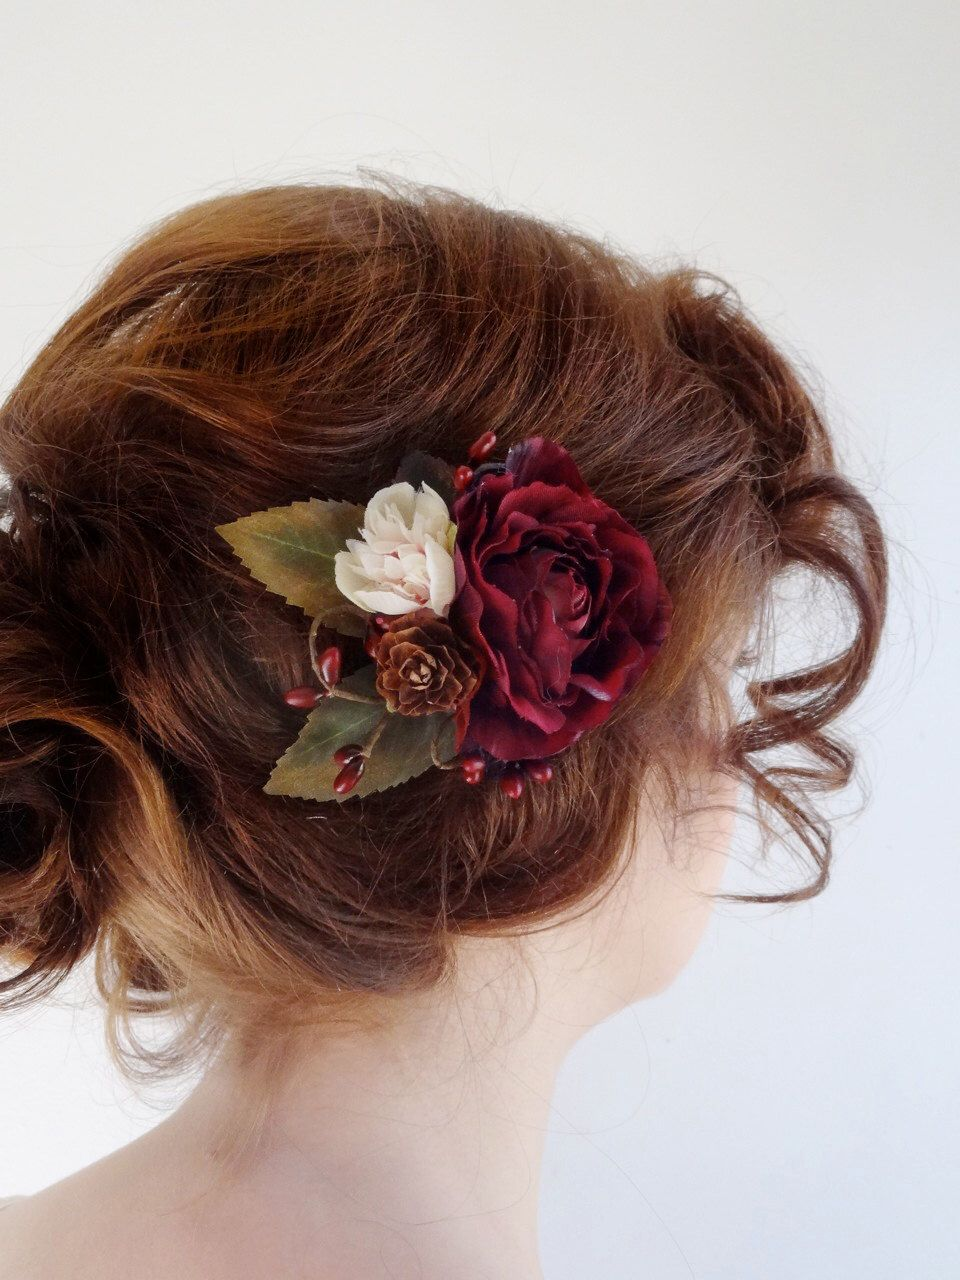 pin by elaine dearing on wedding hair accessories | wedding